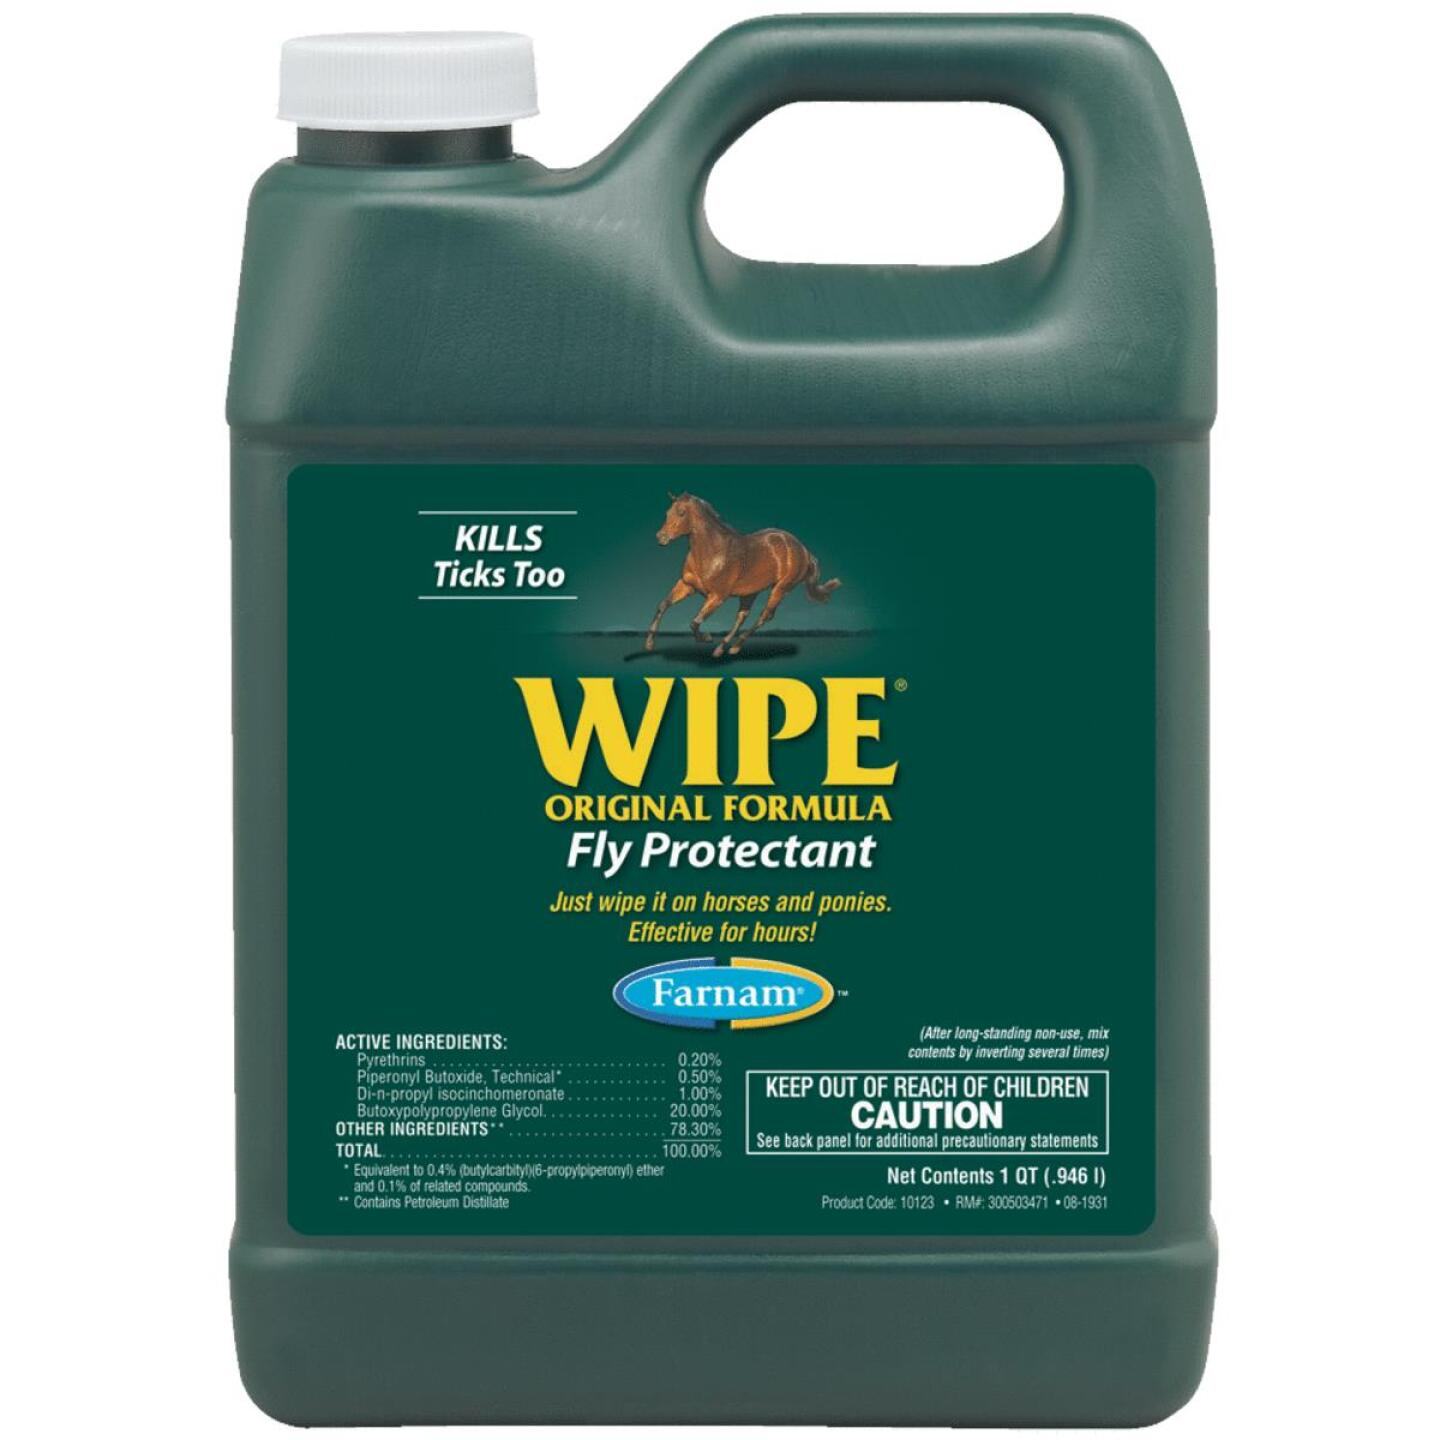 Farnam Wipe 32 Oz. Ready To Use Fly Spray Protectant Image 1